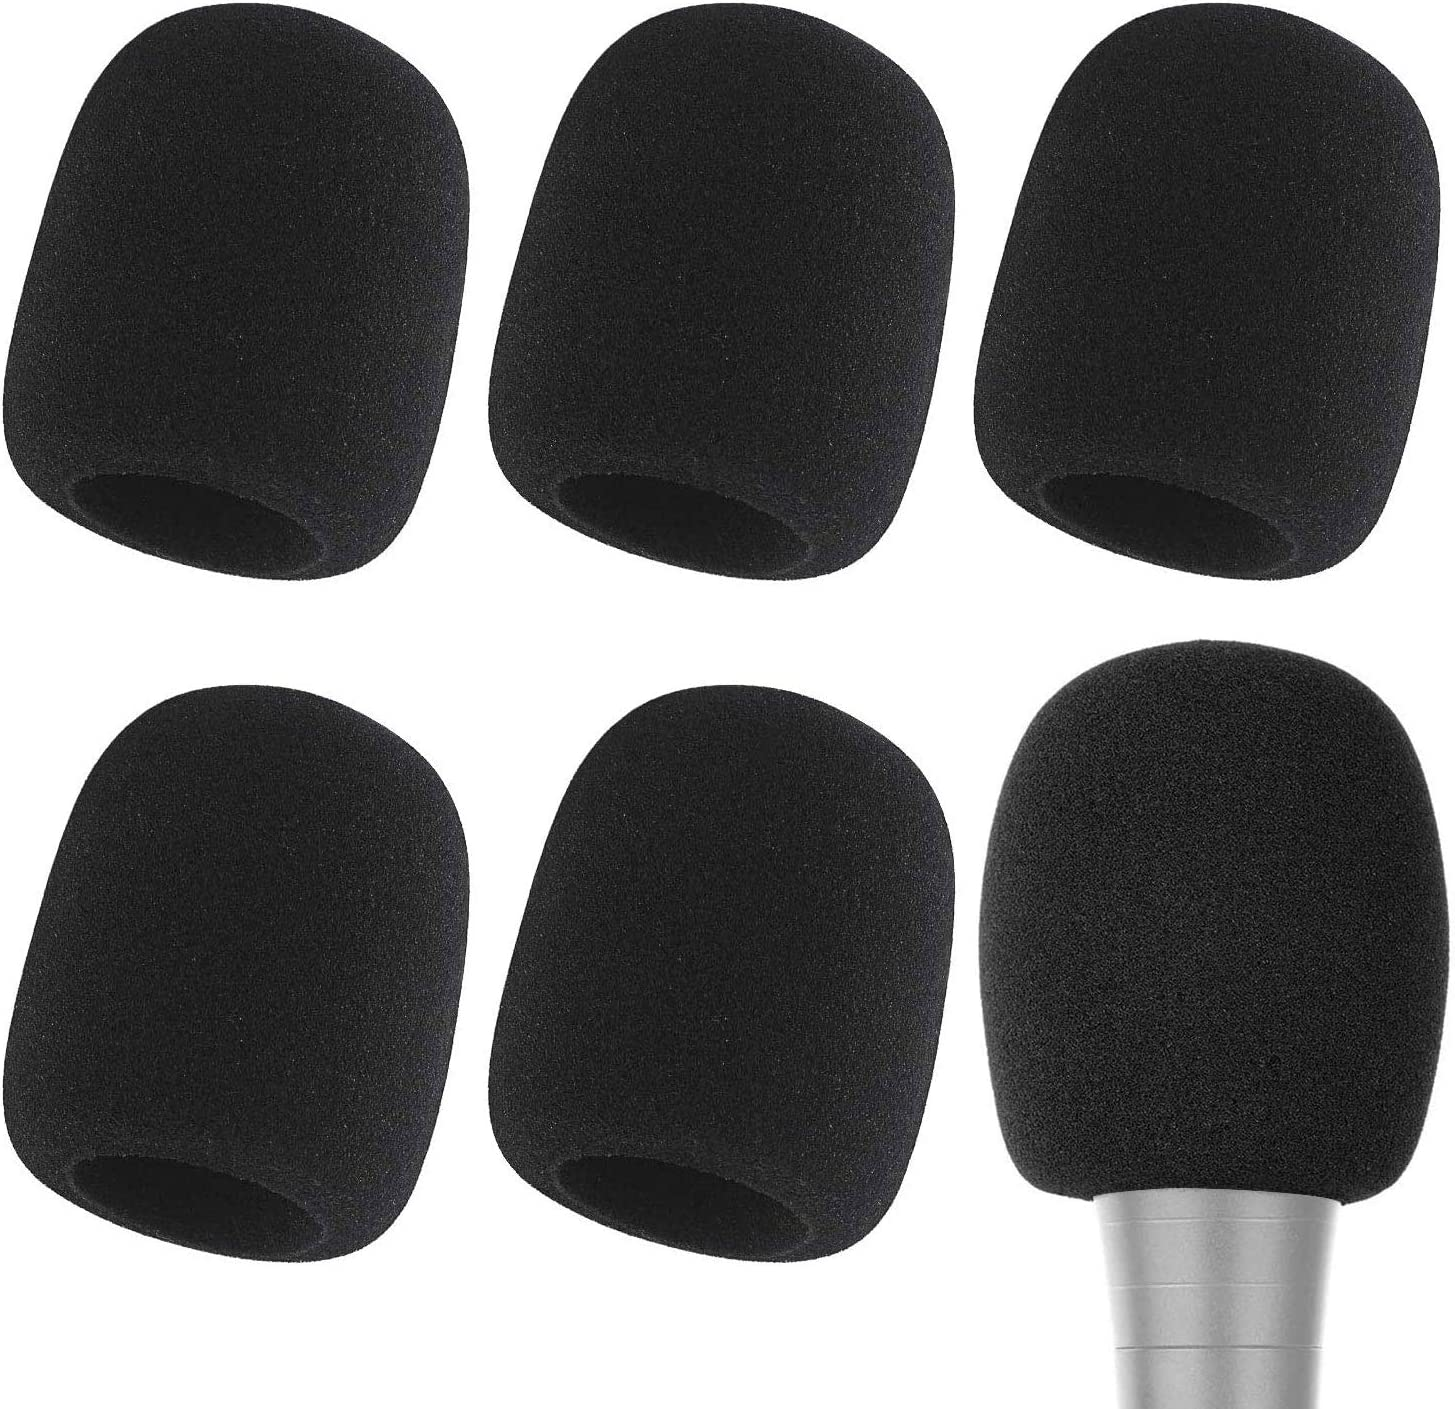 New mail Free shipping anywhere in the nation order Microphone Cover - Foam Mic for Windscreen Suitable Covers Most